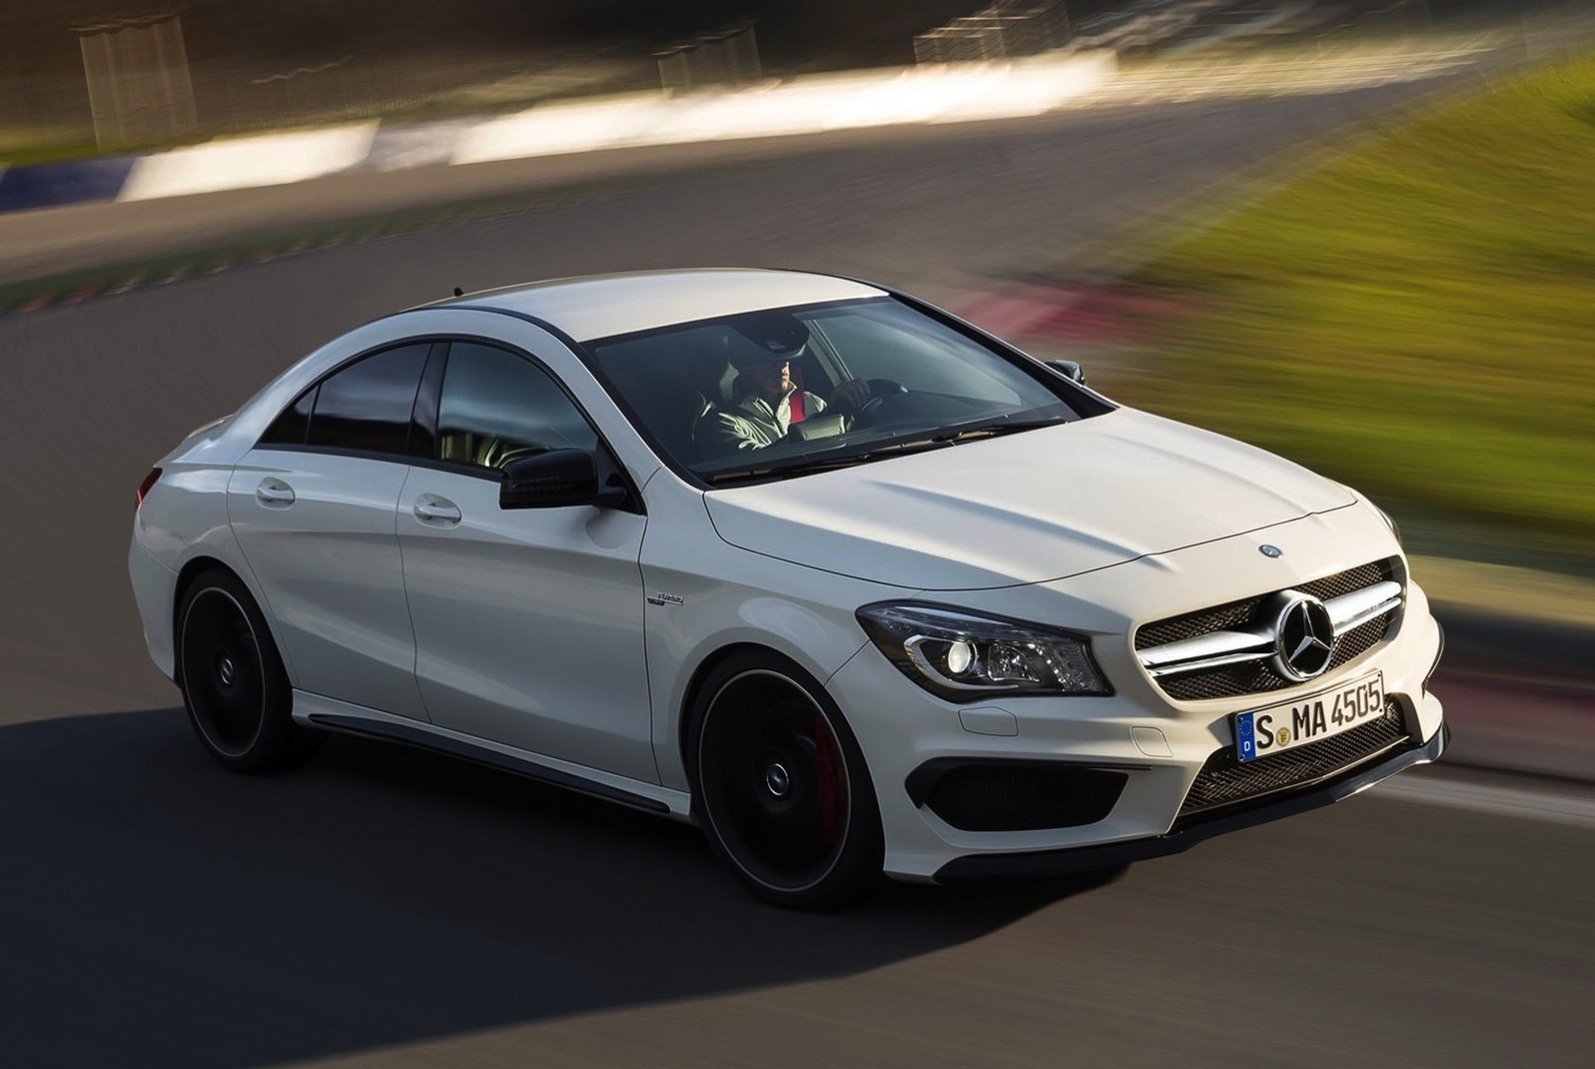 Mercedes benz cla45 amg 265kw four door coupe debuts in for Mercedes benz new york ny